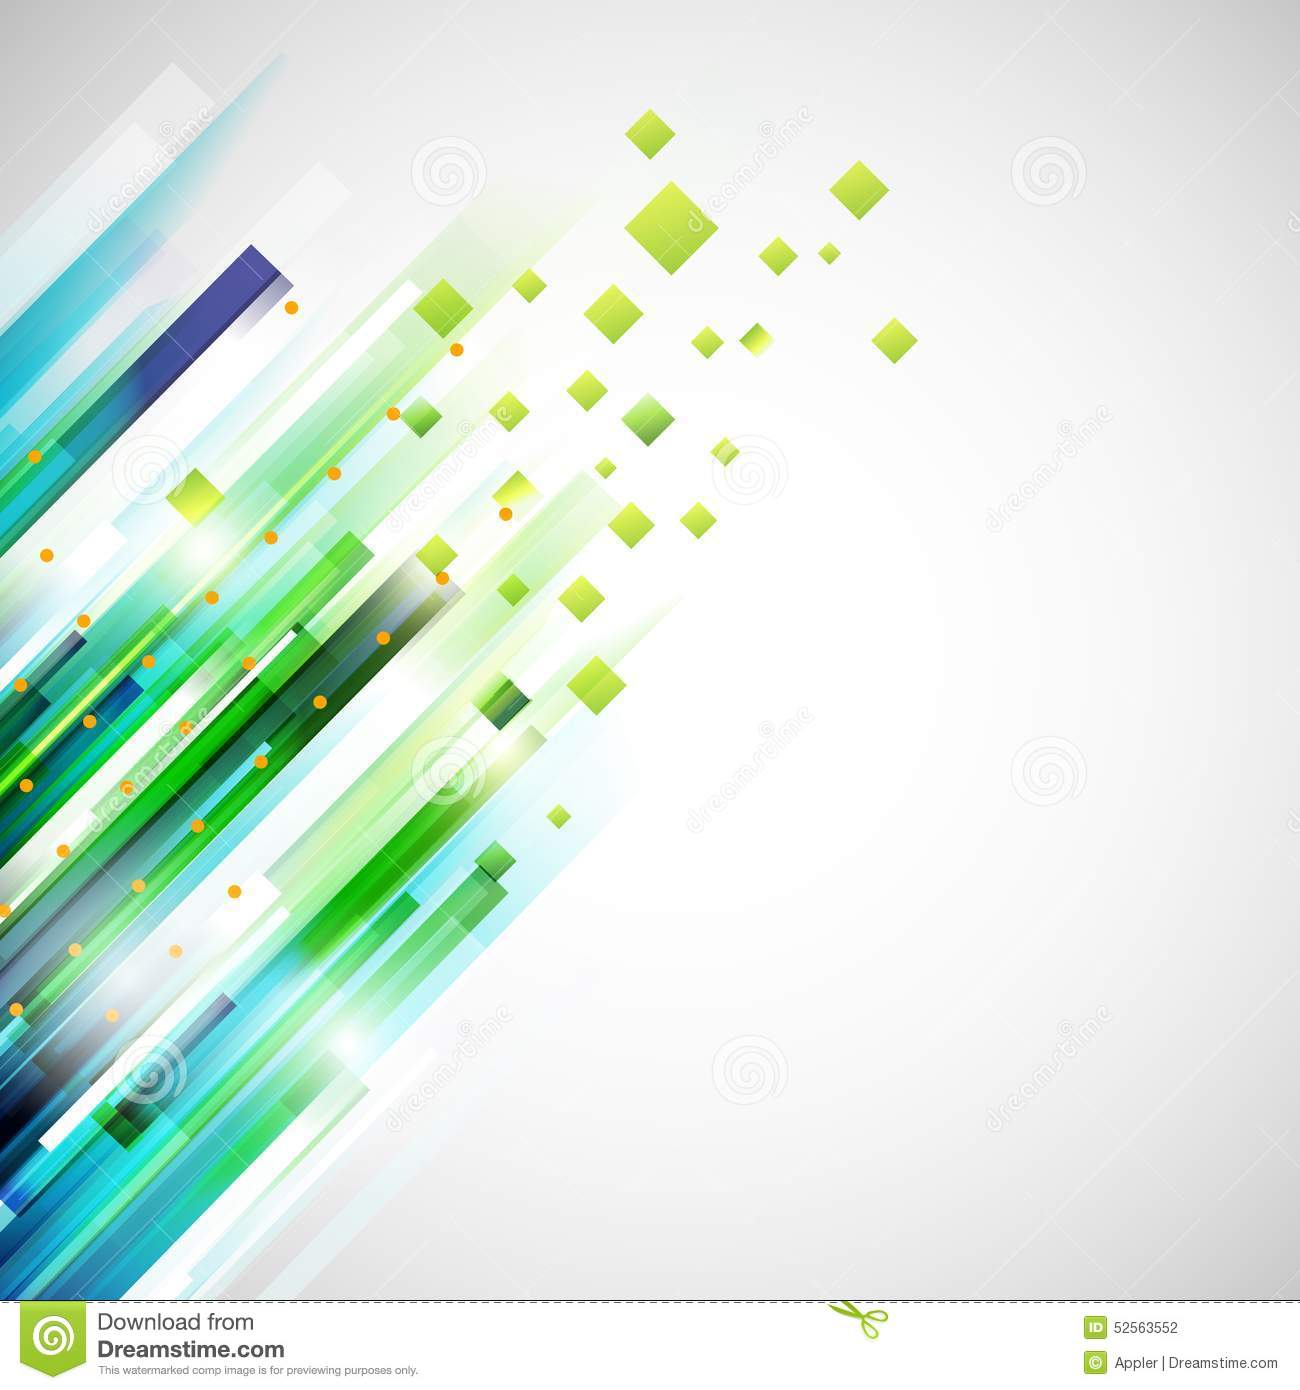 Royalty Free Vector Download Abstract Technology Geometric Left